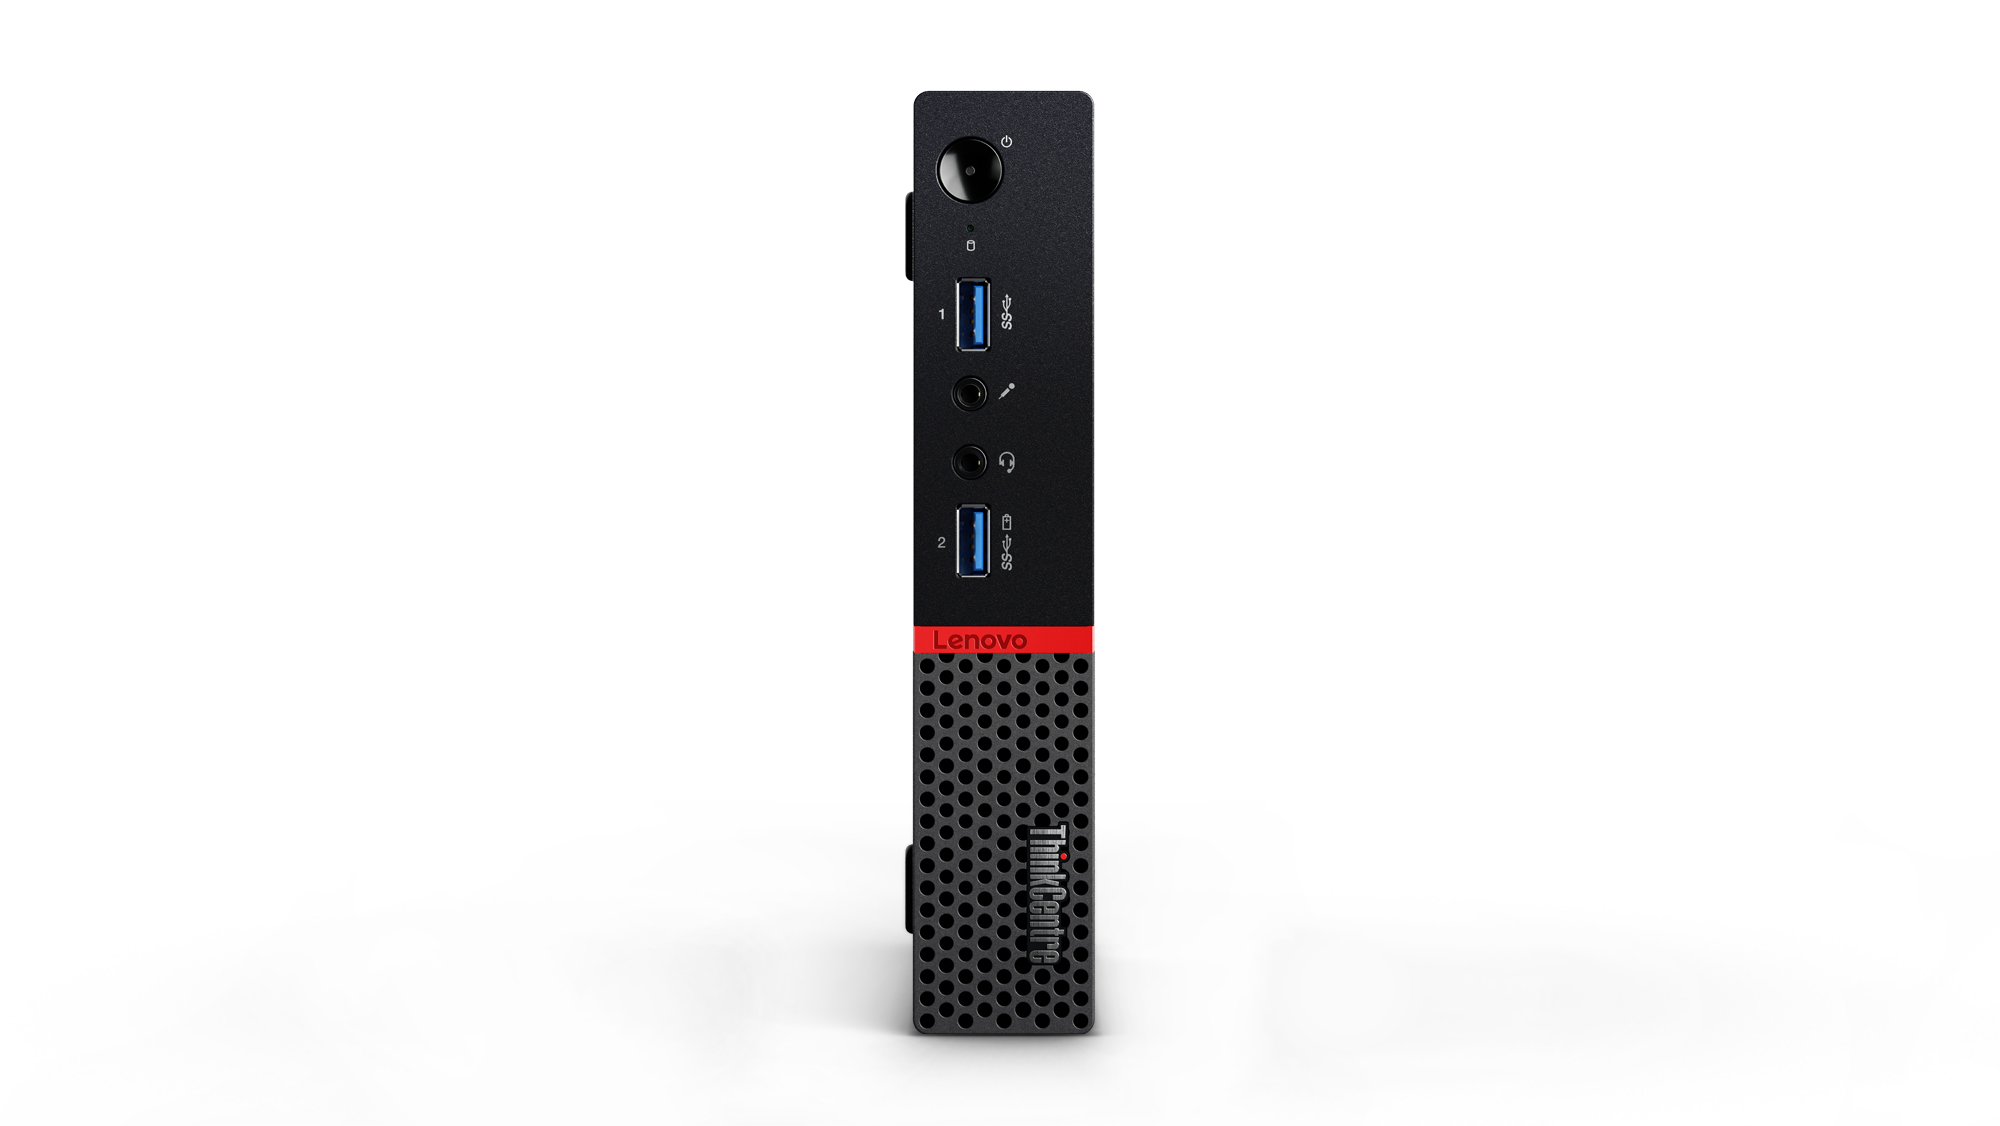 Lenovo ThinkCentre M700 3.2GHz i3-6100T 1L sized PC Black